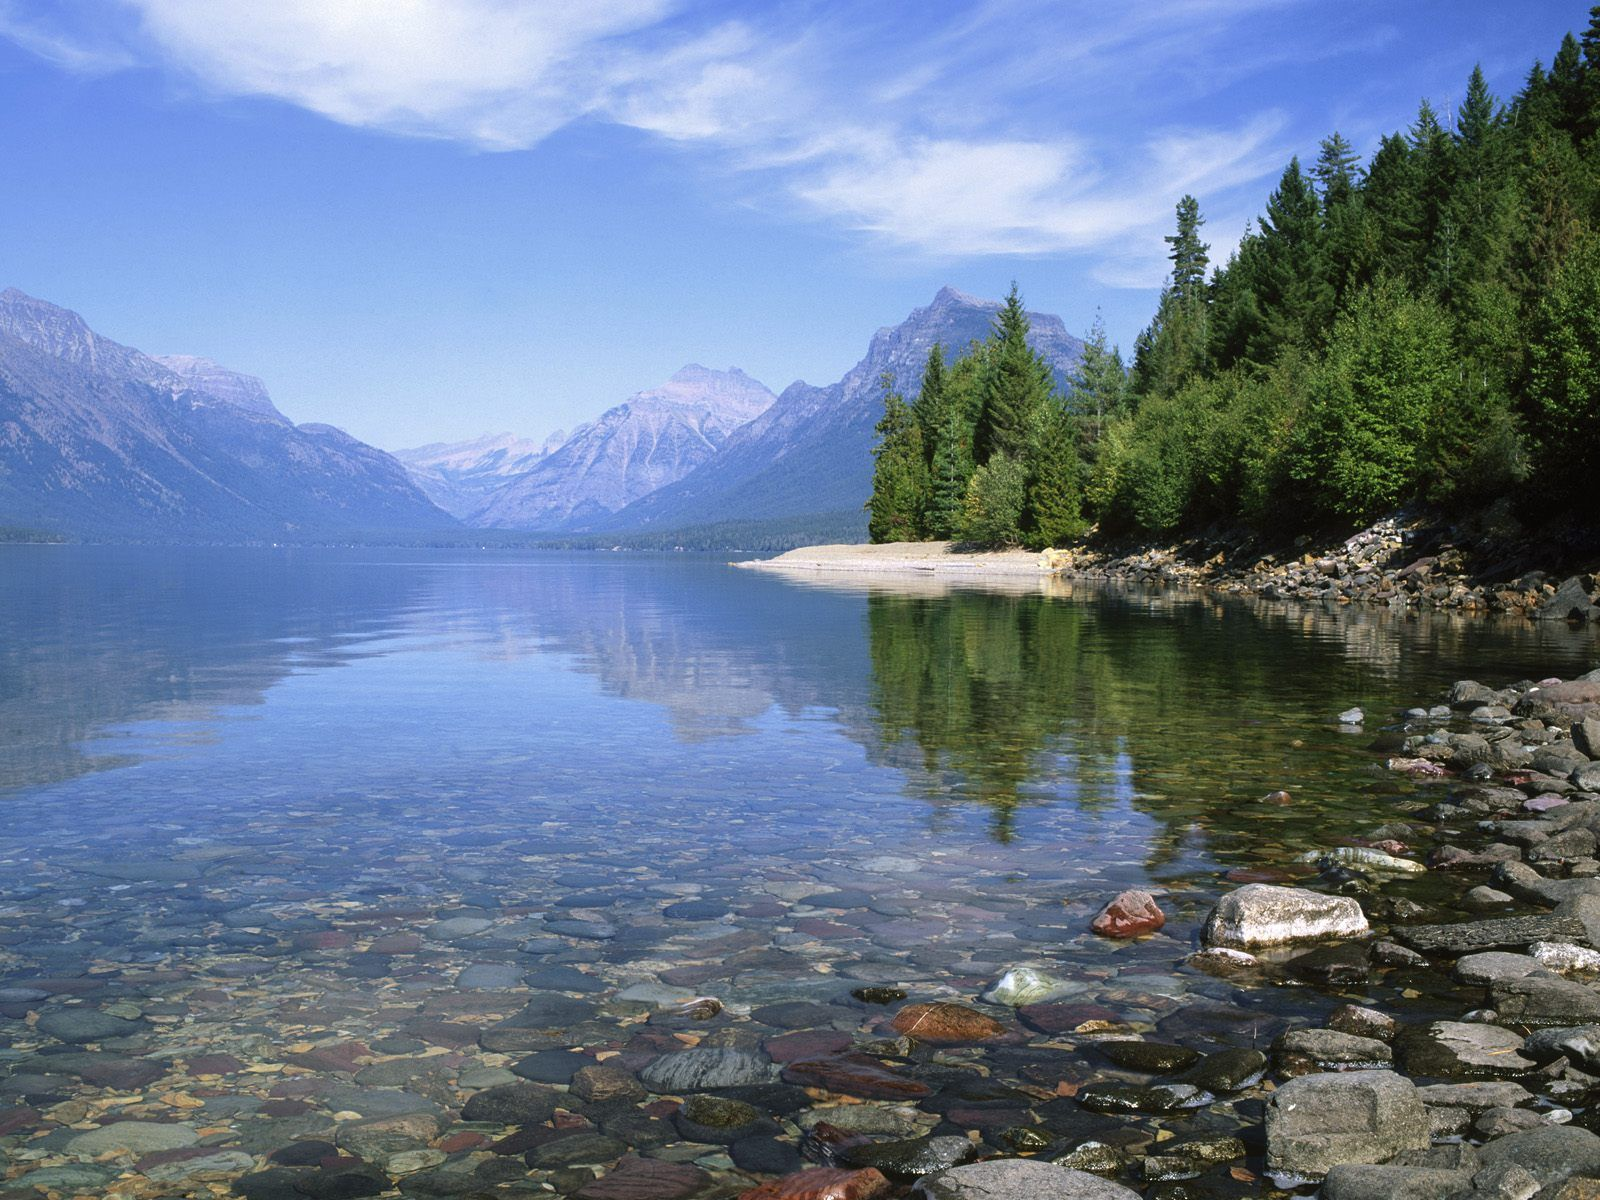 Lake Mcdonald in Glacier National Park.  Sat in a lawn chair and tried to read but it was too beautiful.  I ended up just staring at the Mts.  Wish I'd worn my aqua socks - ouchy rocks.